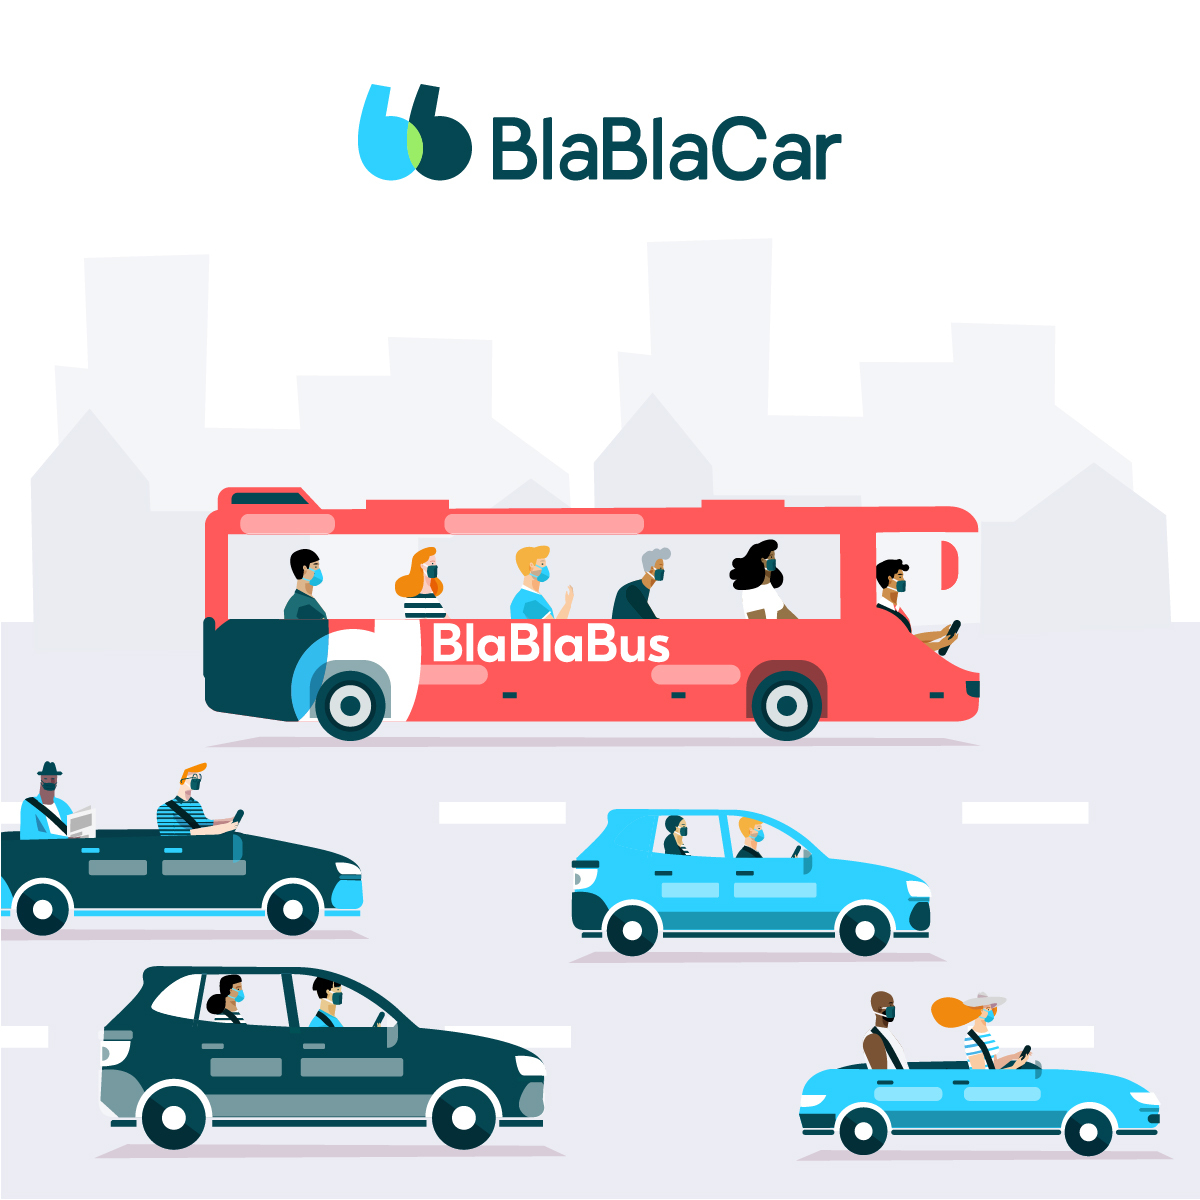 BlaBlaCar withstands the crisis with 50 million passengers in 2020